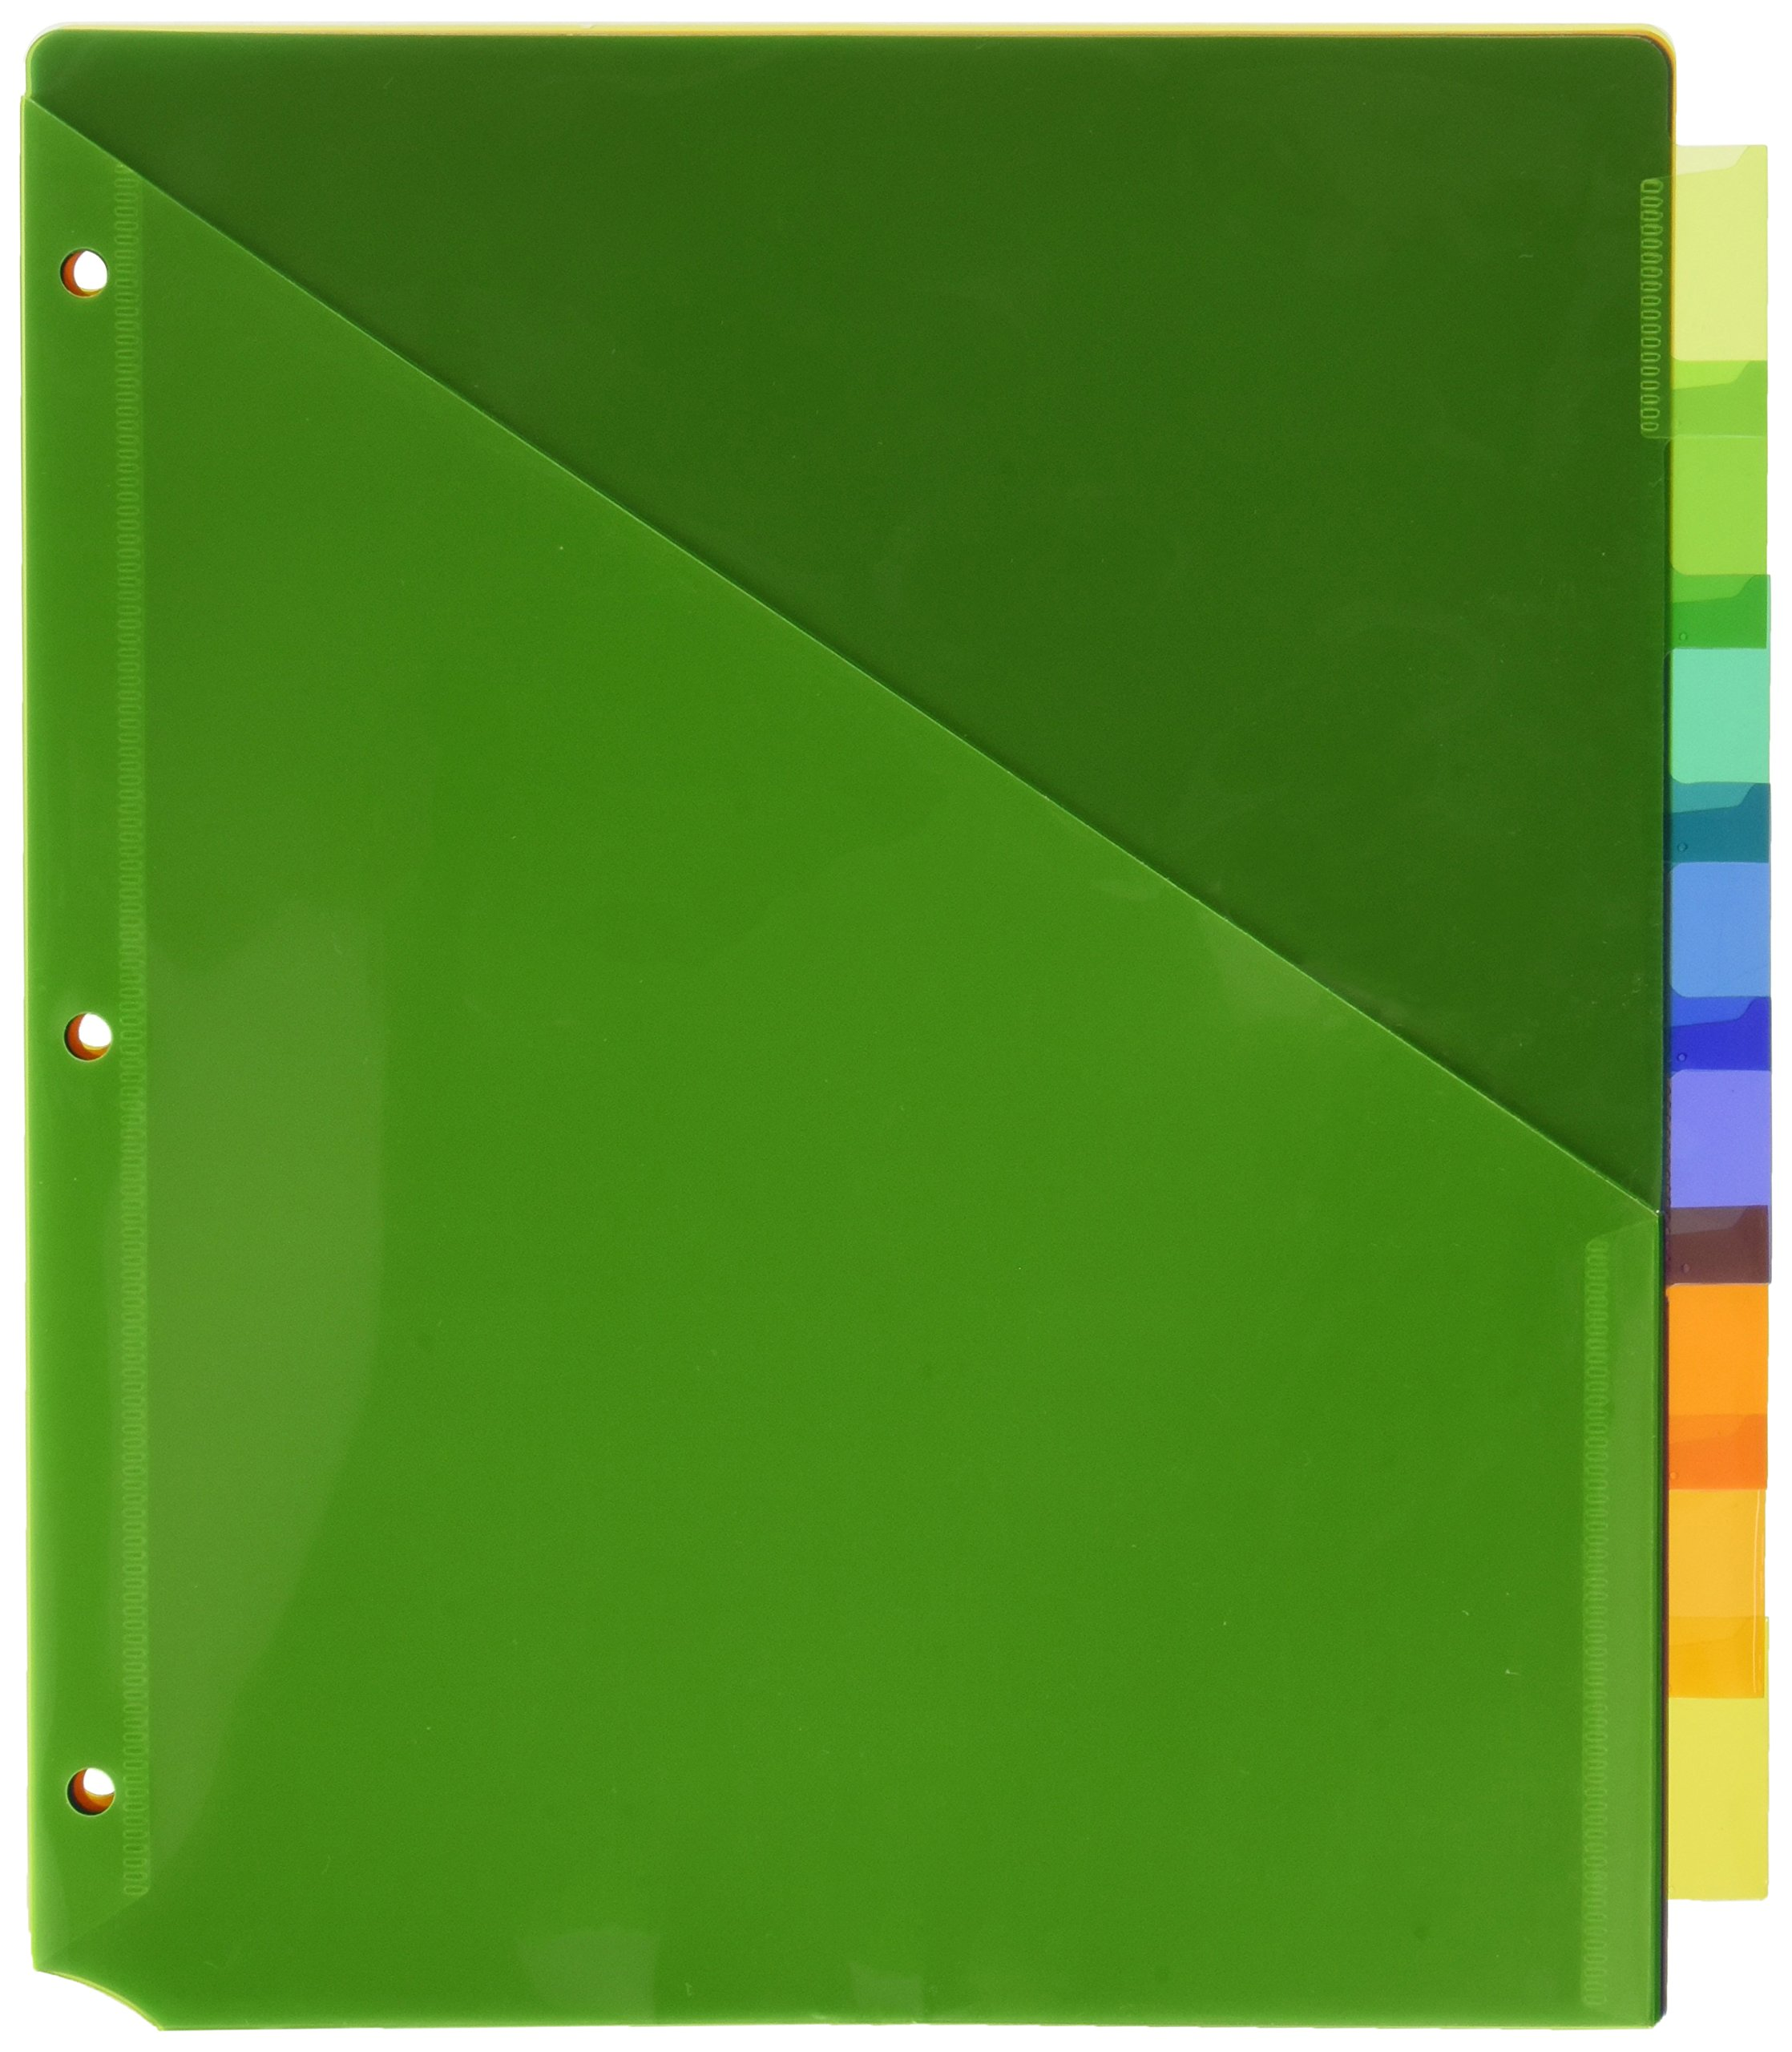 Avery Big Tab Insertable Two-Pocket Plastic Dividers, 8 Multicolor Tabs, Case Pack of 24 Sets (11907)